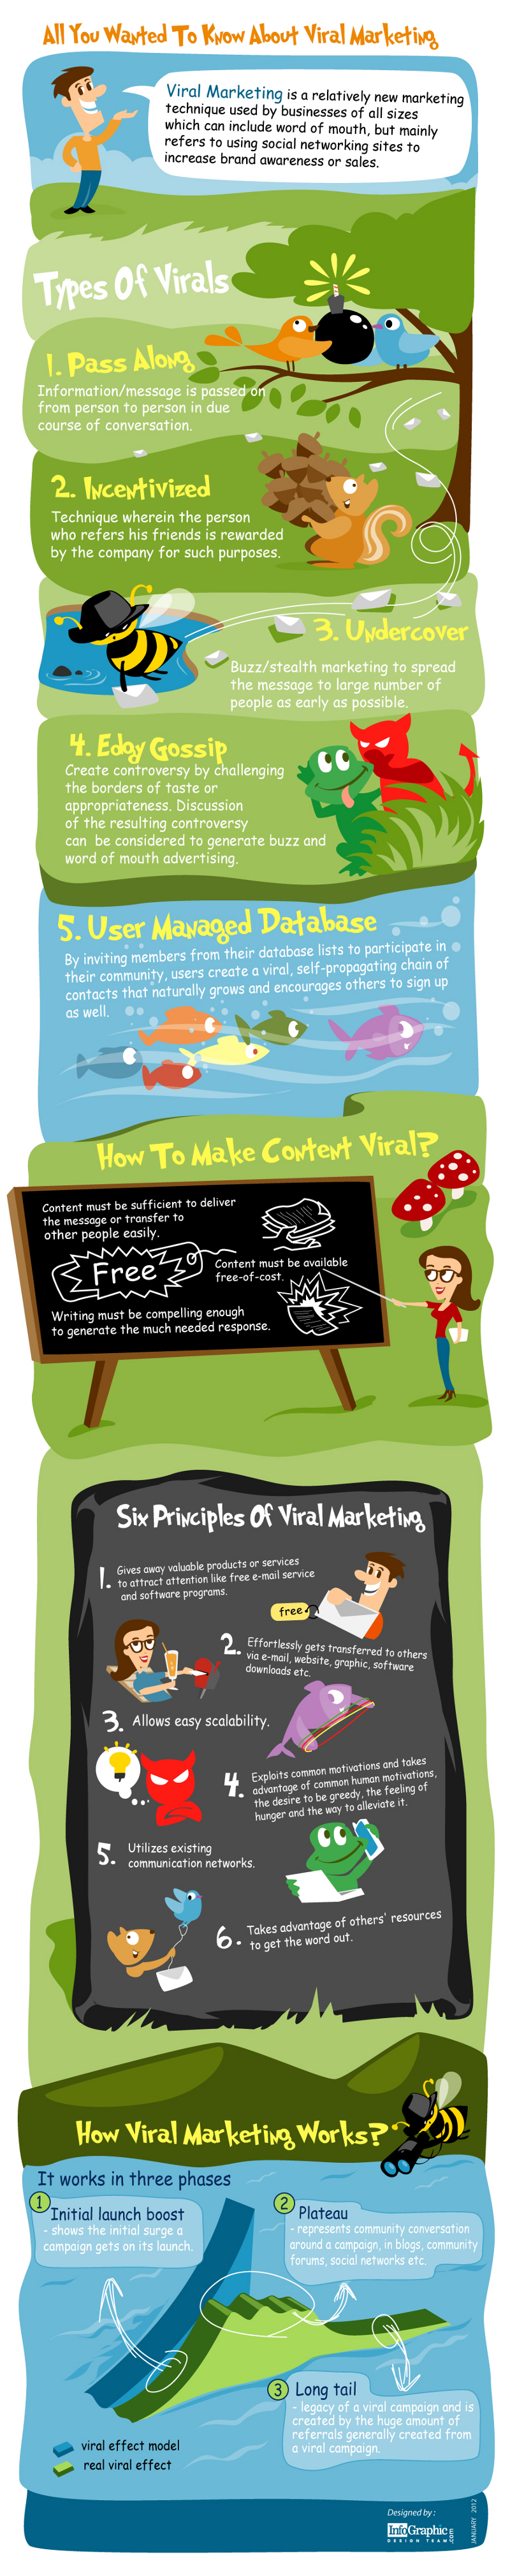 Types of Viral Marketing